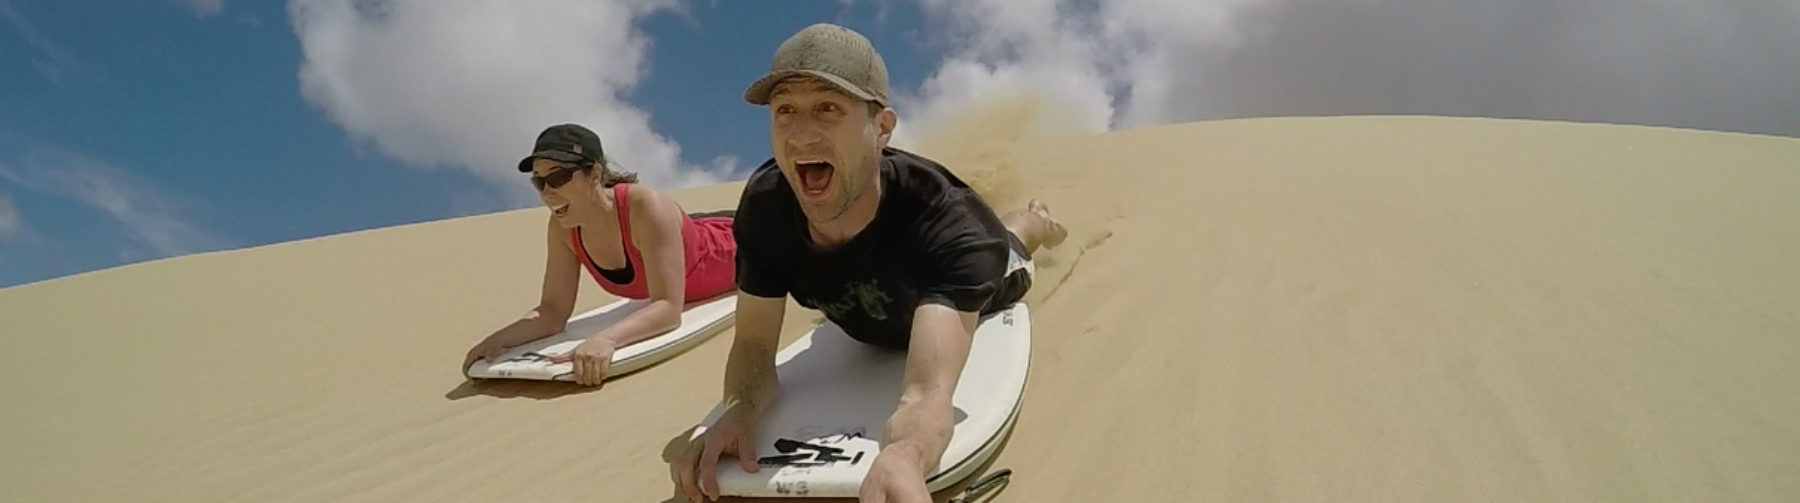 Sandboarding in Cape Reinga, Northland